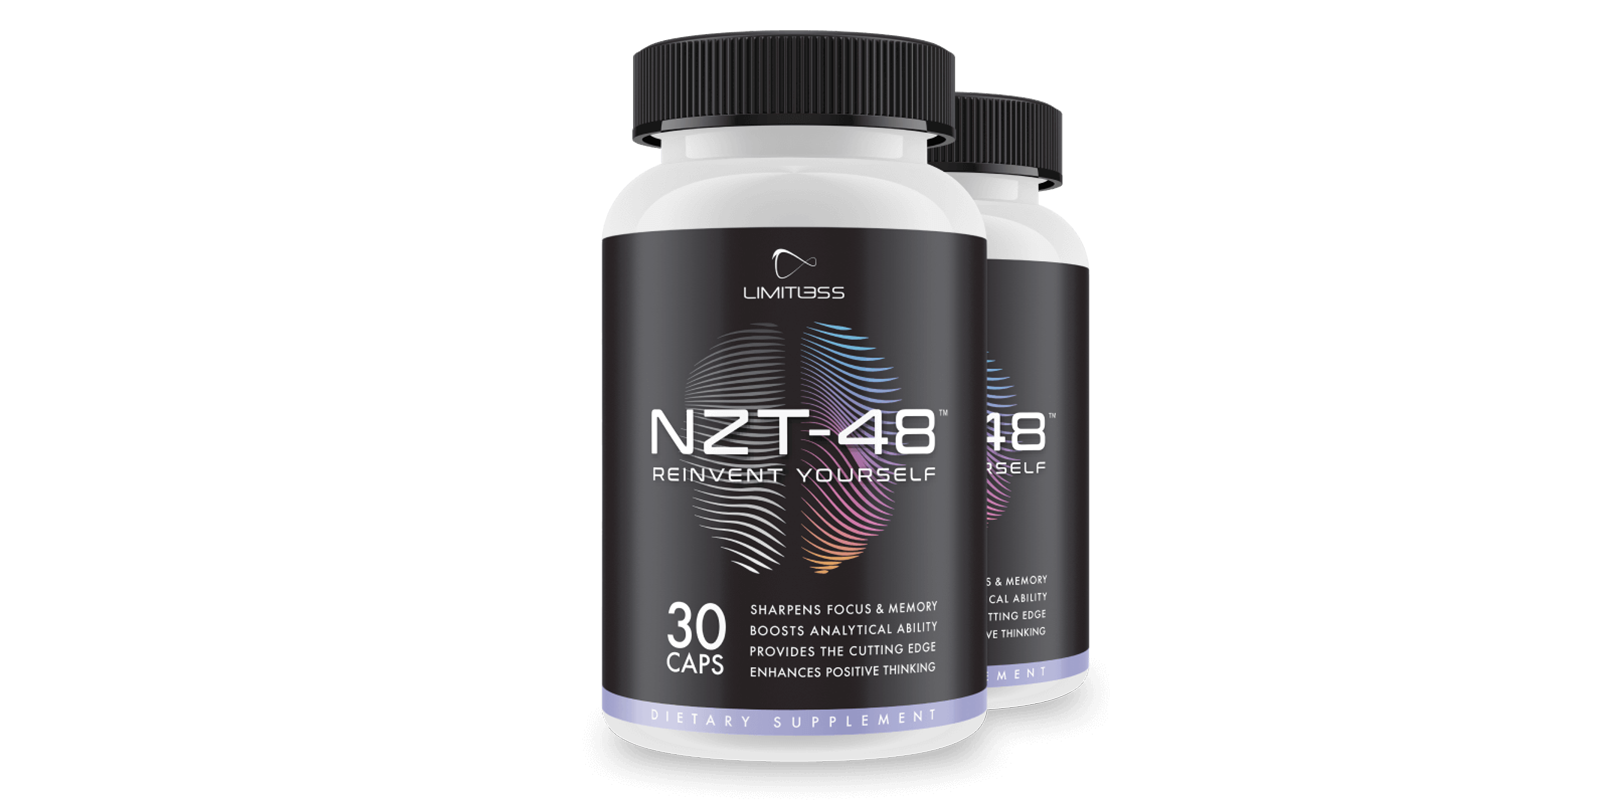 Limitless NZT 48 Product